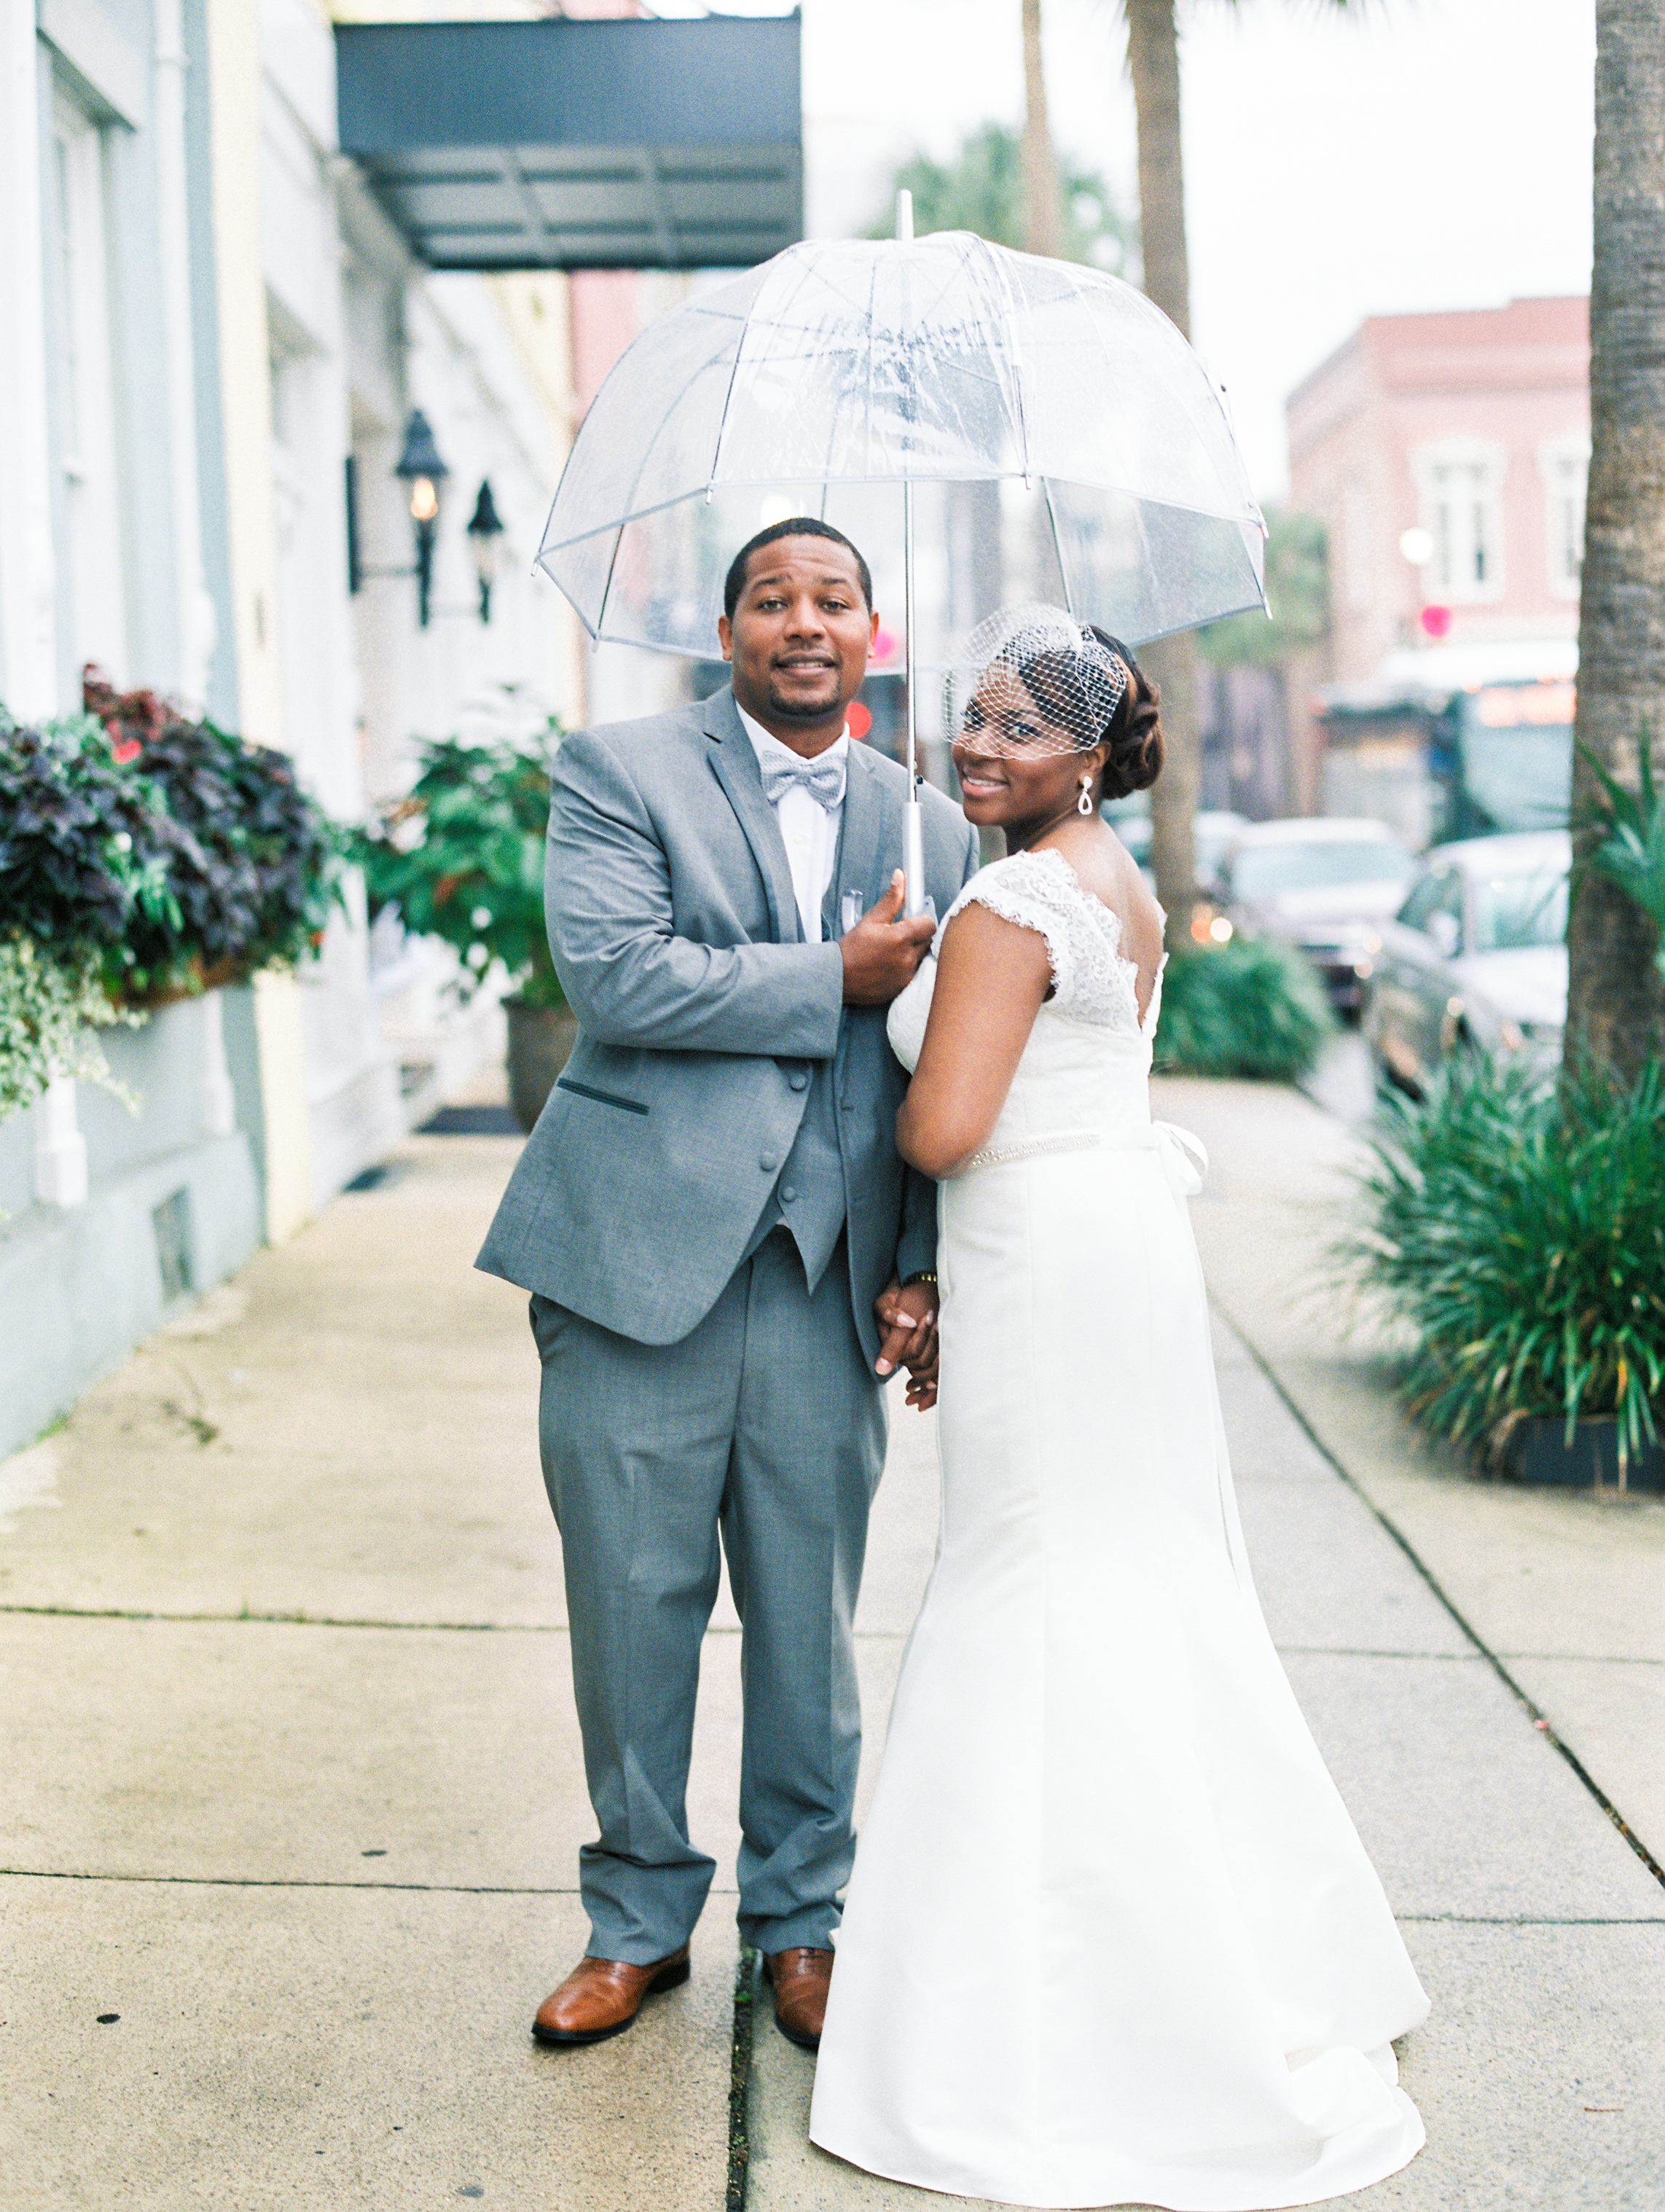 Downtown Charleston Elopement Pop-Up Wedding Planners, The Vendue, Scarlet Plan & Design Film (68).jpg